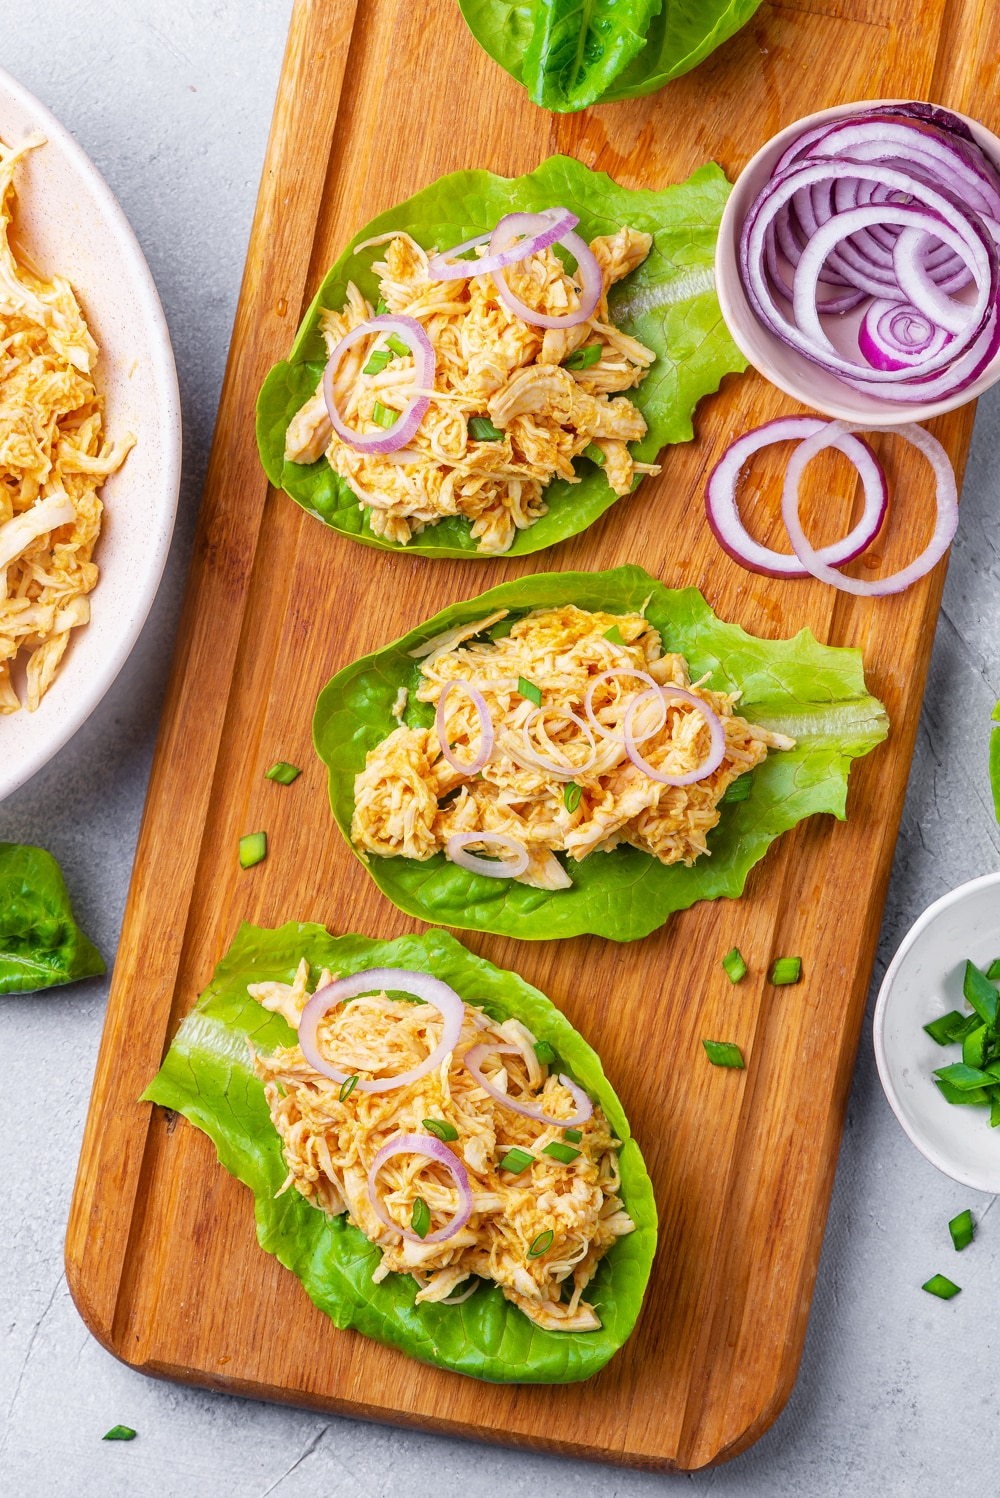 3 Shredded buffalo chicken lettuce wraps topped with green onions.